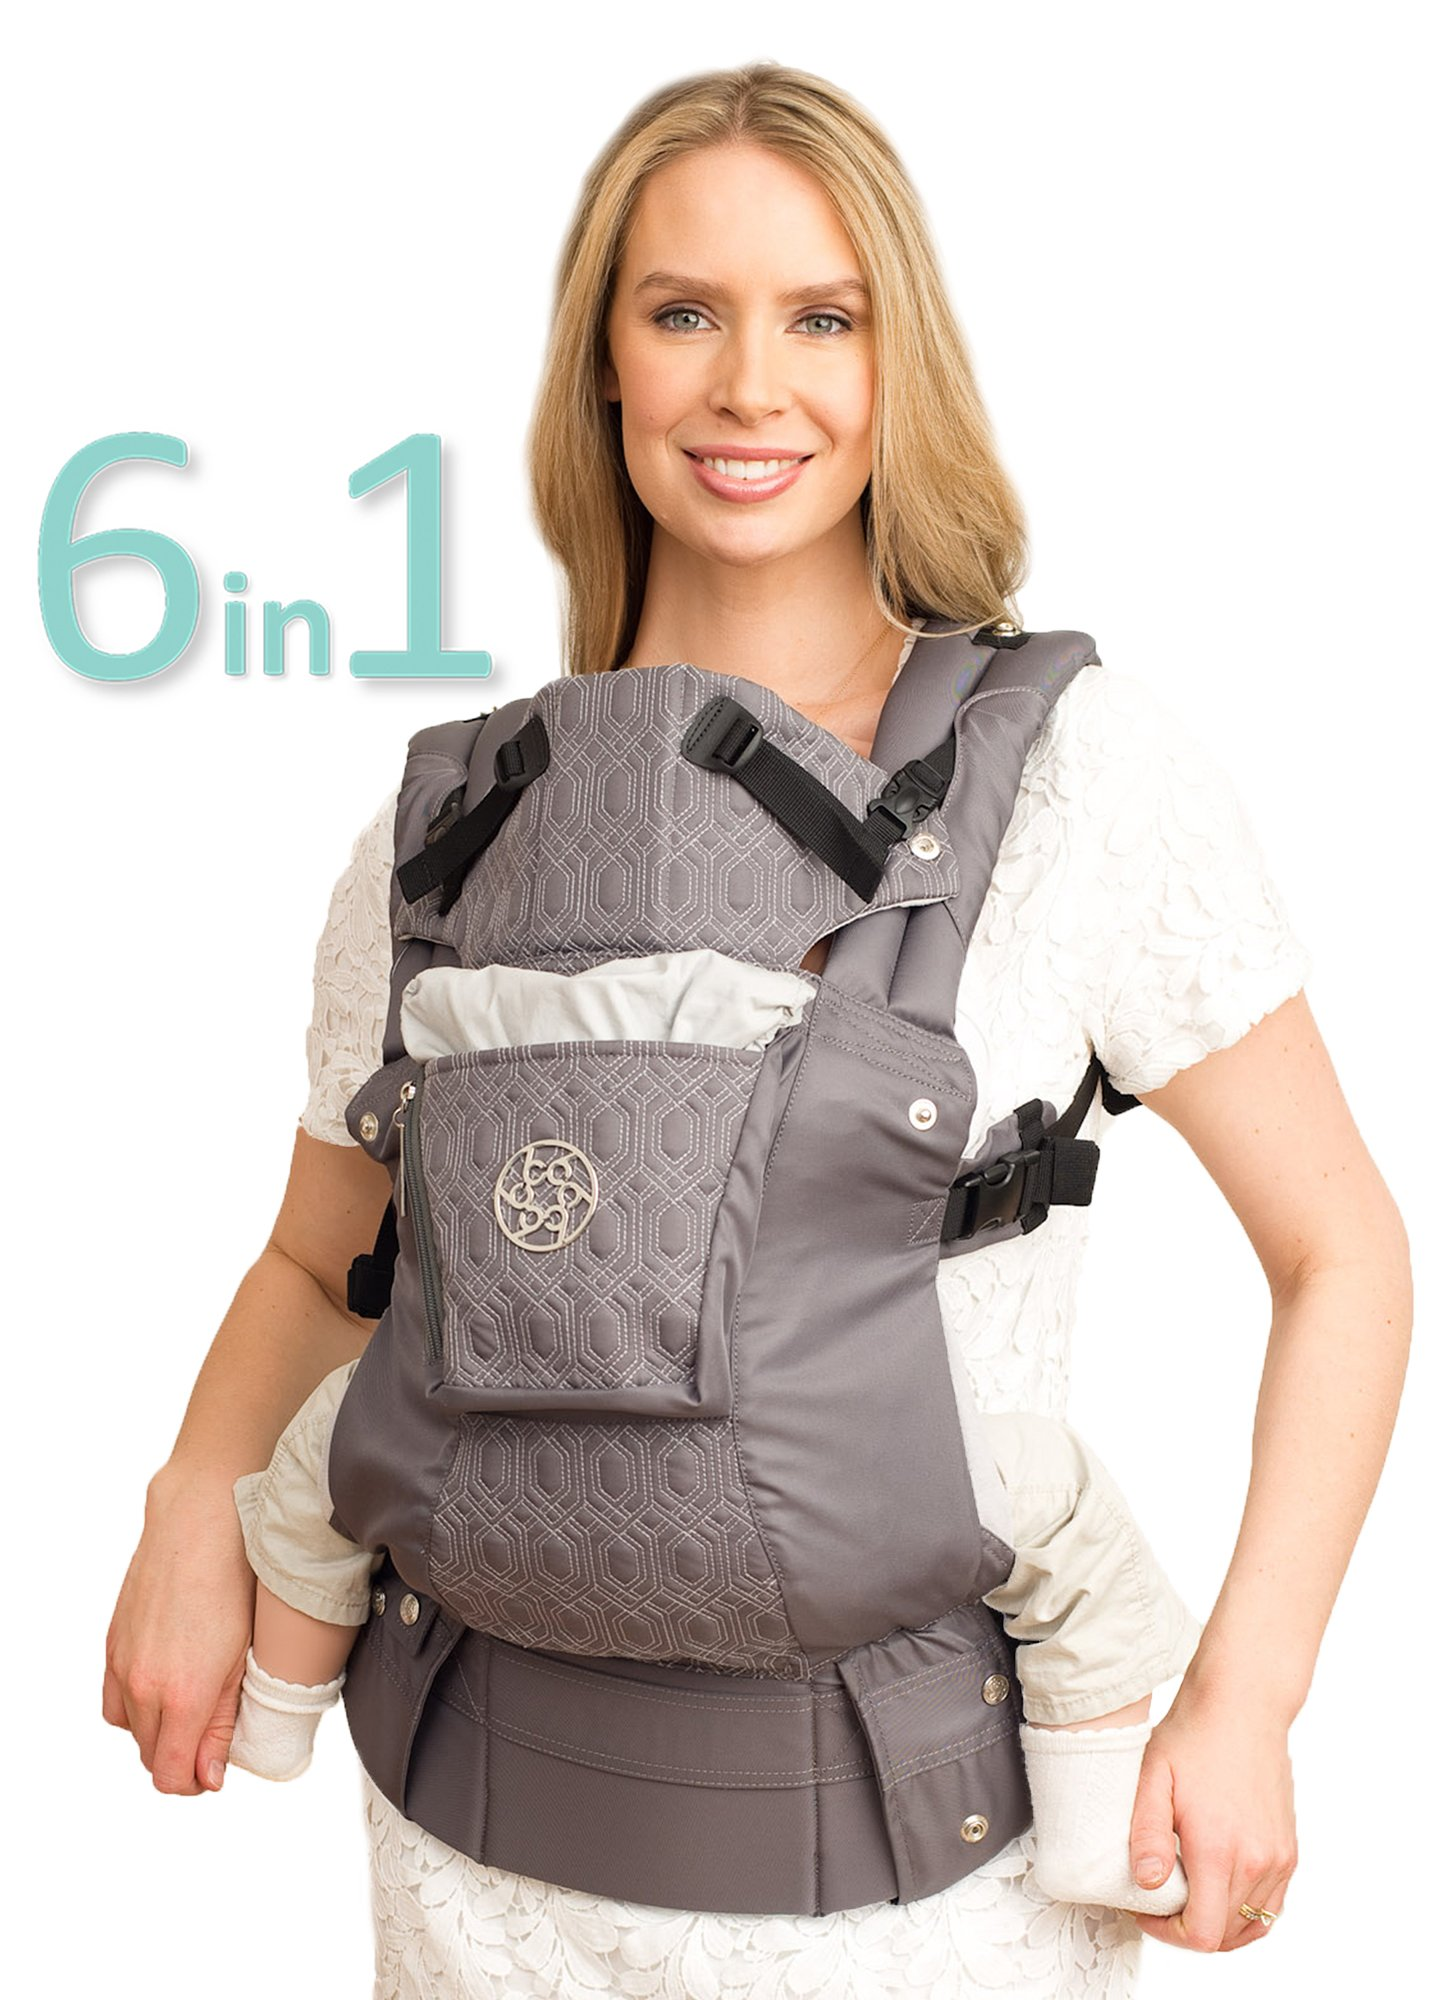 SIX-Position, 360° Ergonomic Baby & Child Carrier by LILLEbaby - The COMPLETE Embossed LUXE (Mystique)